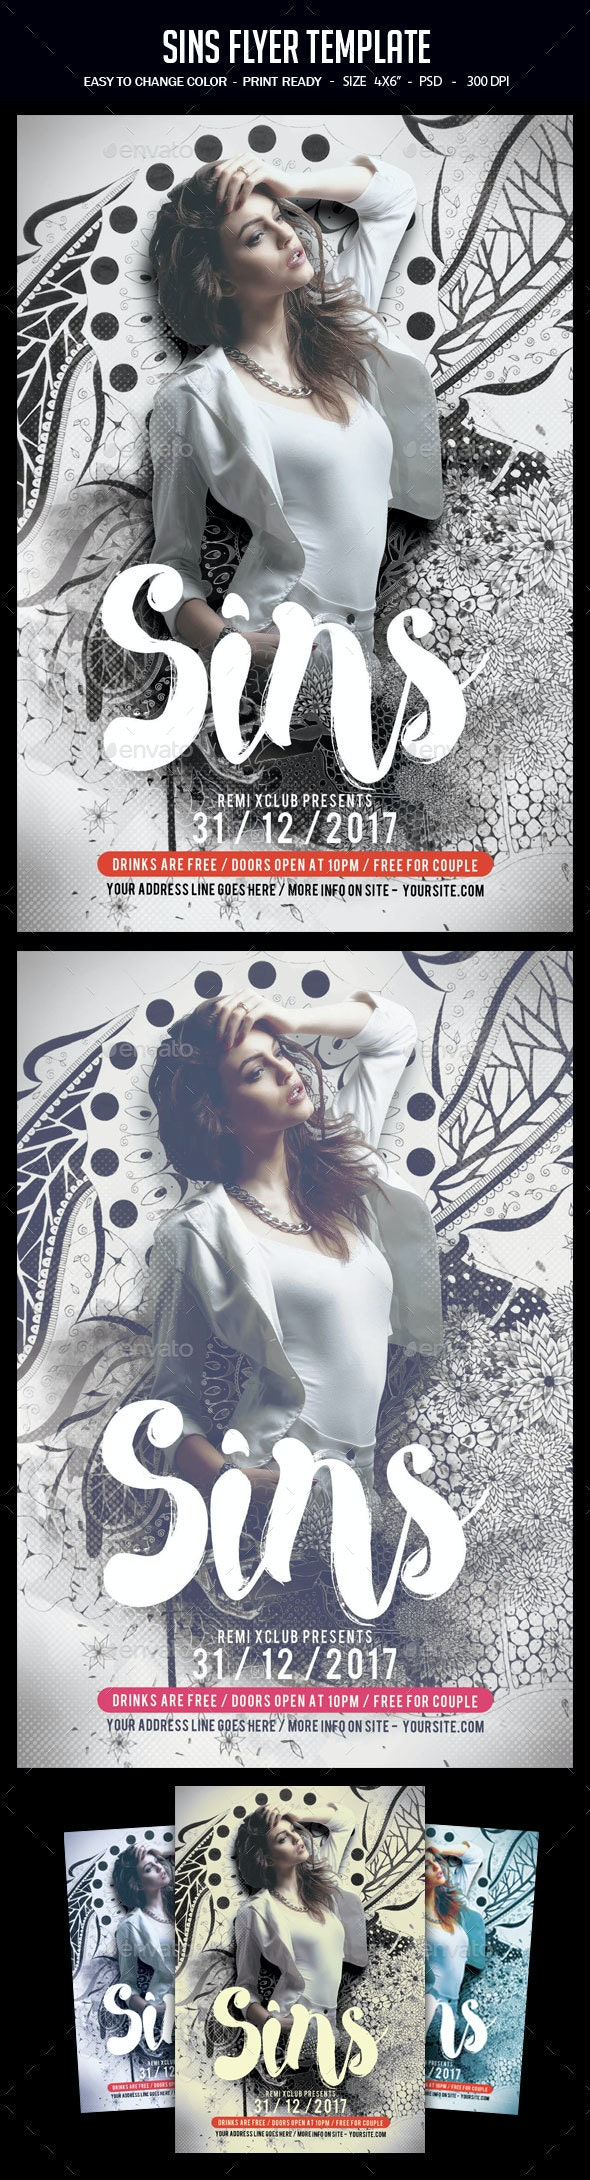 Sins Flyer Template - Clubs & Parties Events